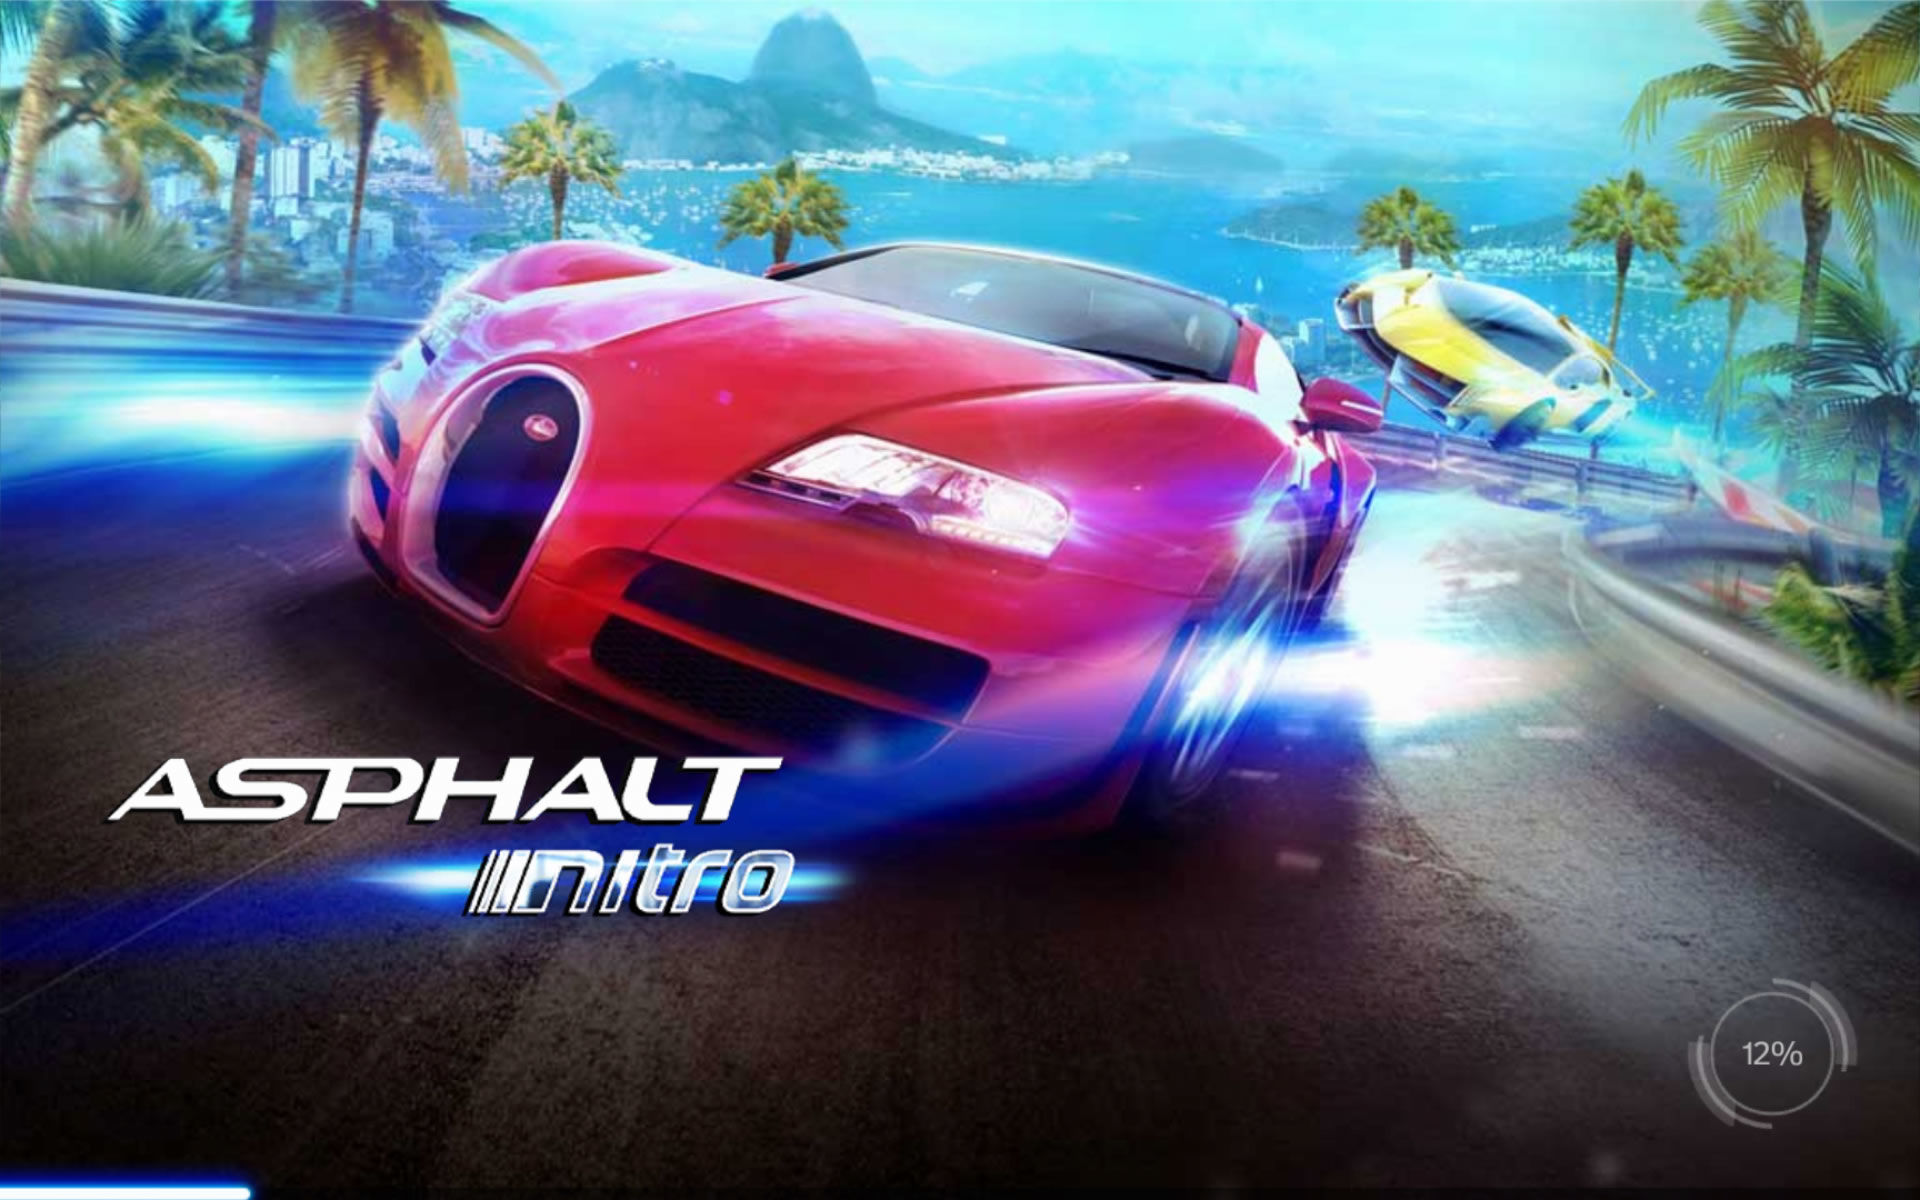 Asphalt: Nitro Android Title / Loading screen